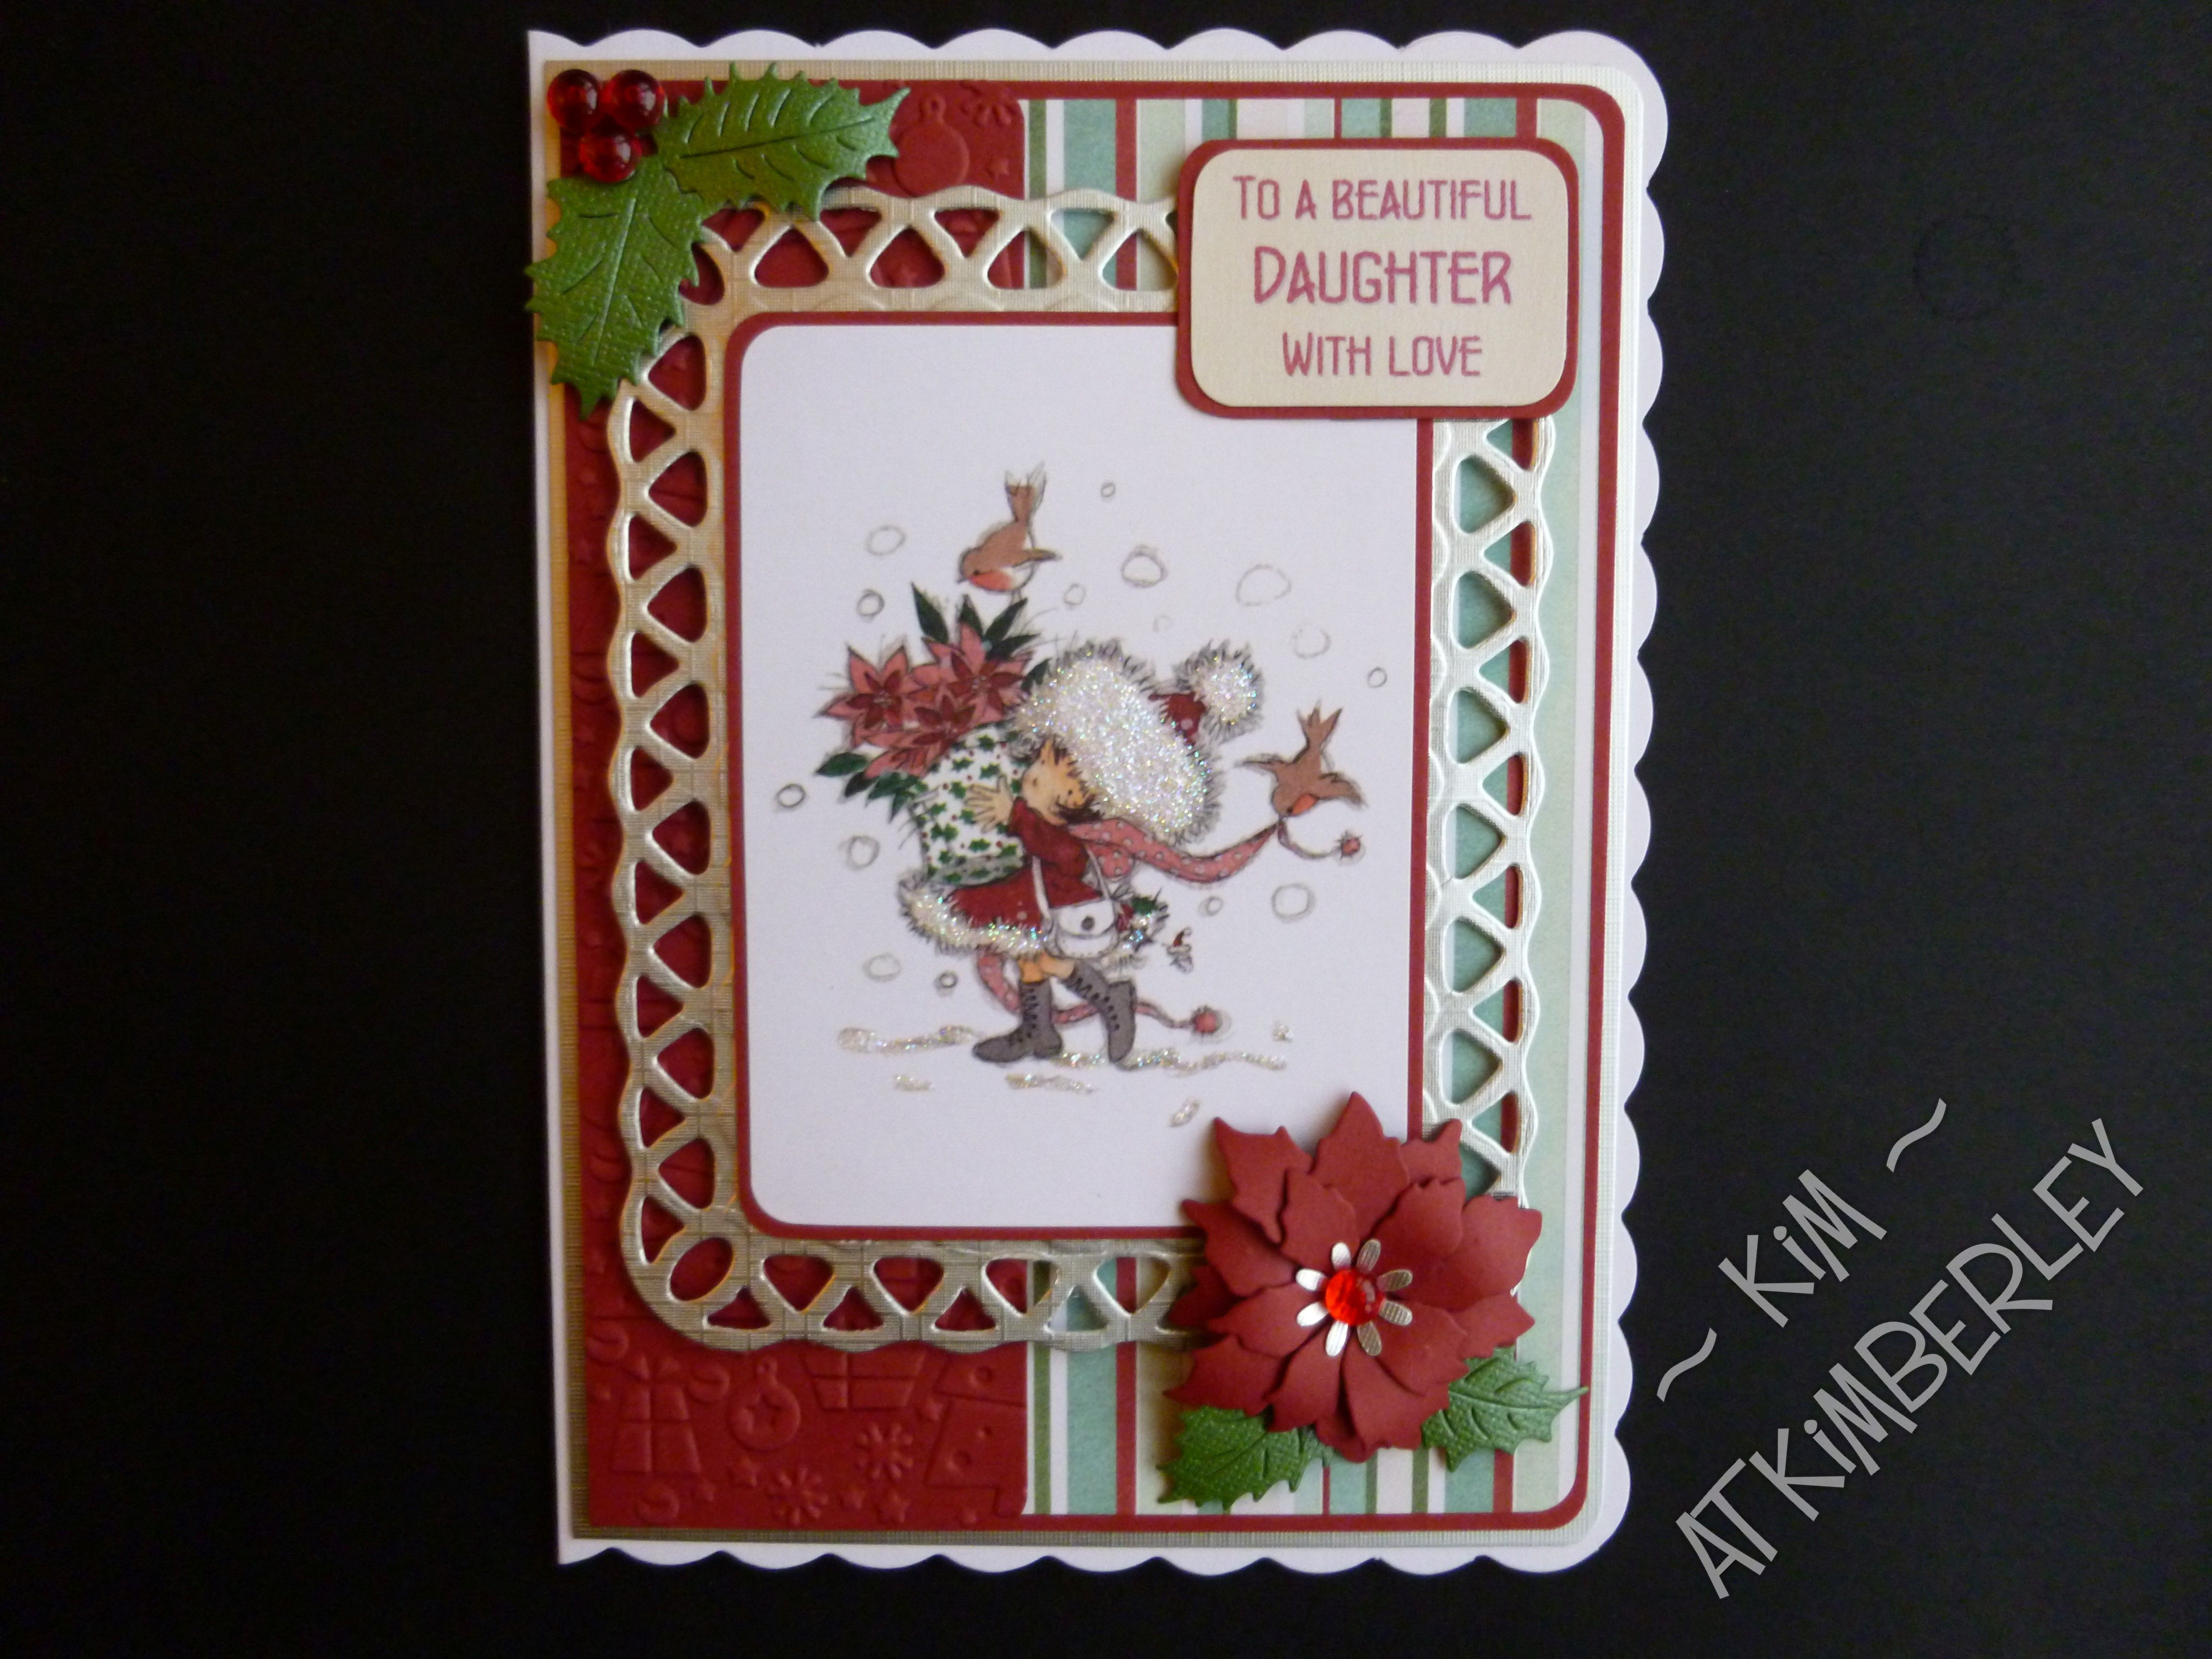 Christmas card using Lili of the Valley image.